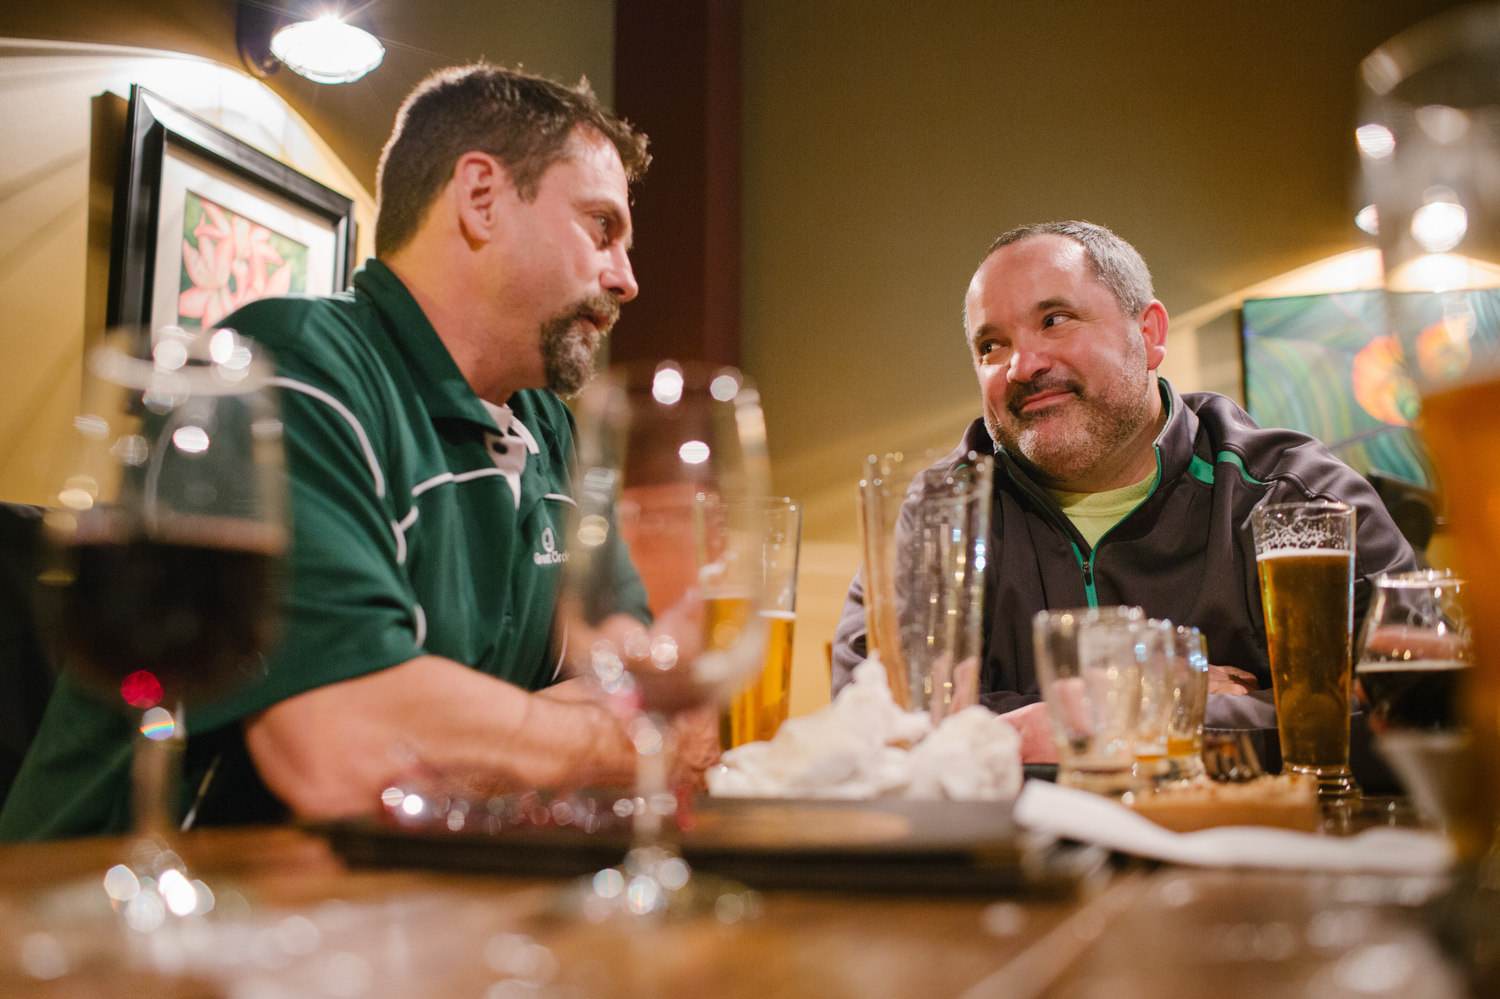 Grand opening of the Public House Brewing Company in St. James, Mo. on Feb. 6, 2015. (Photos by Brad Zweerink)